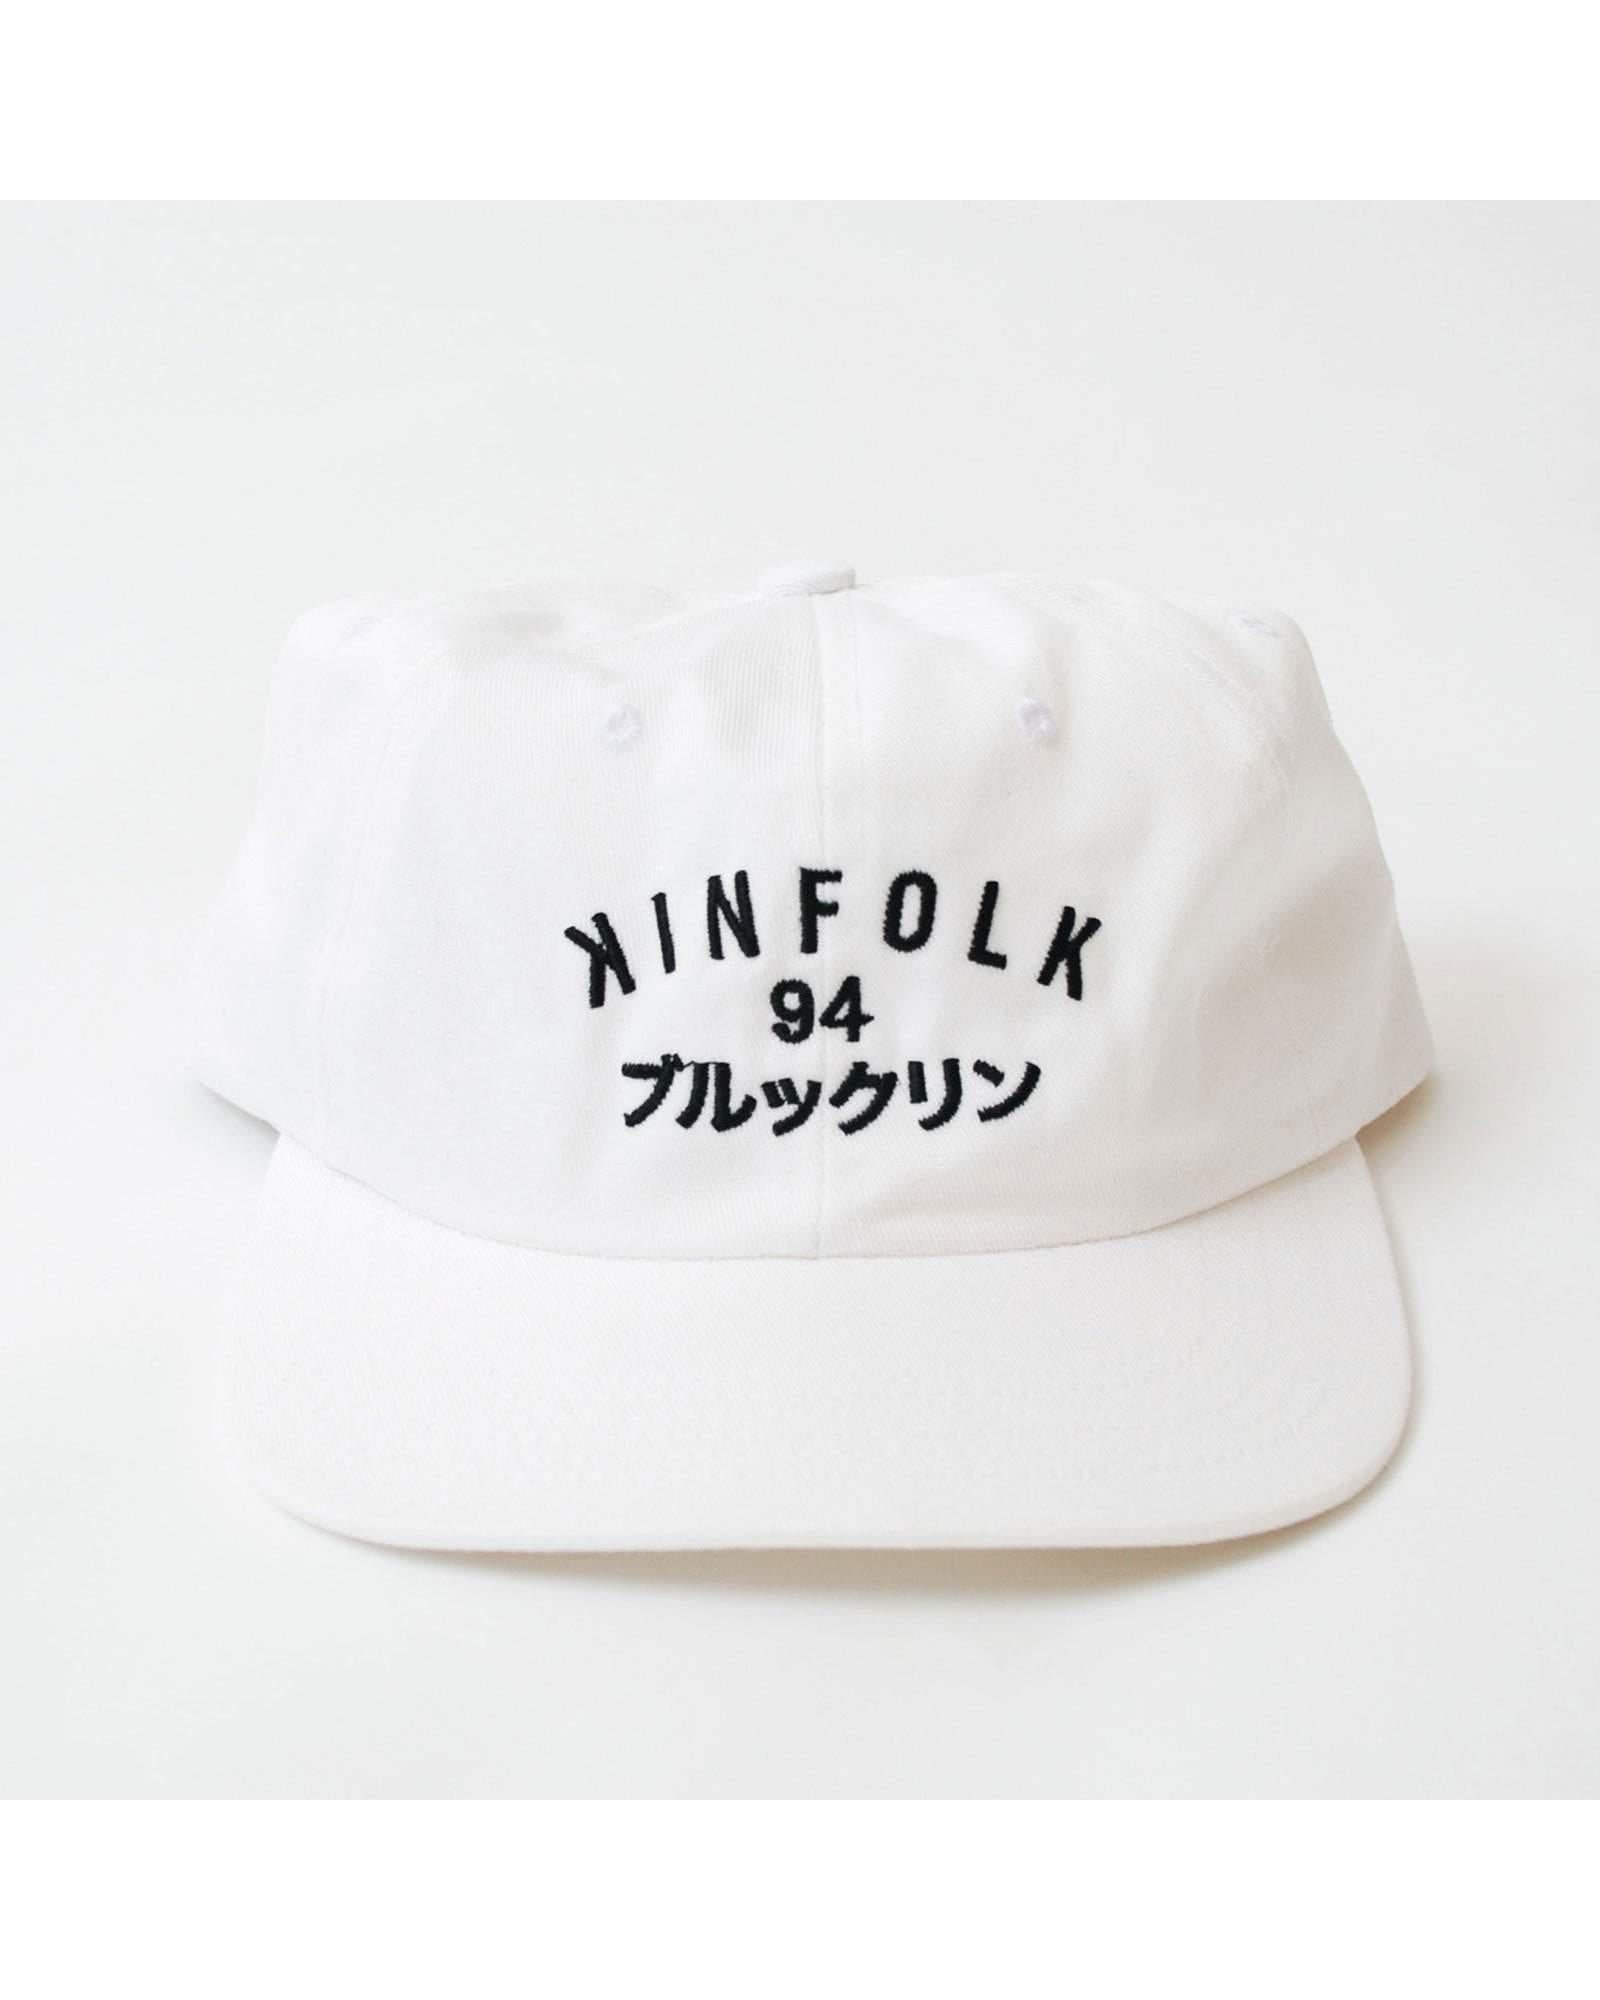 Kinfolk Hats WHT / ADJ Brooklyn Cool Kinfolk 94 Dad Hat - White